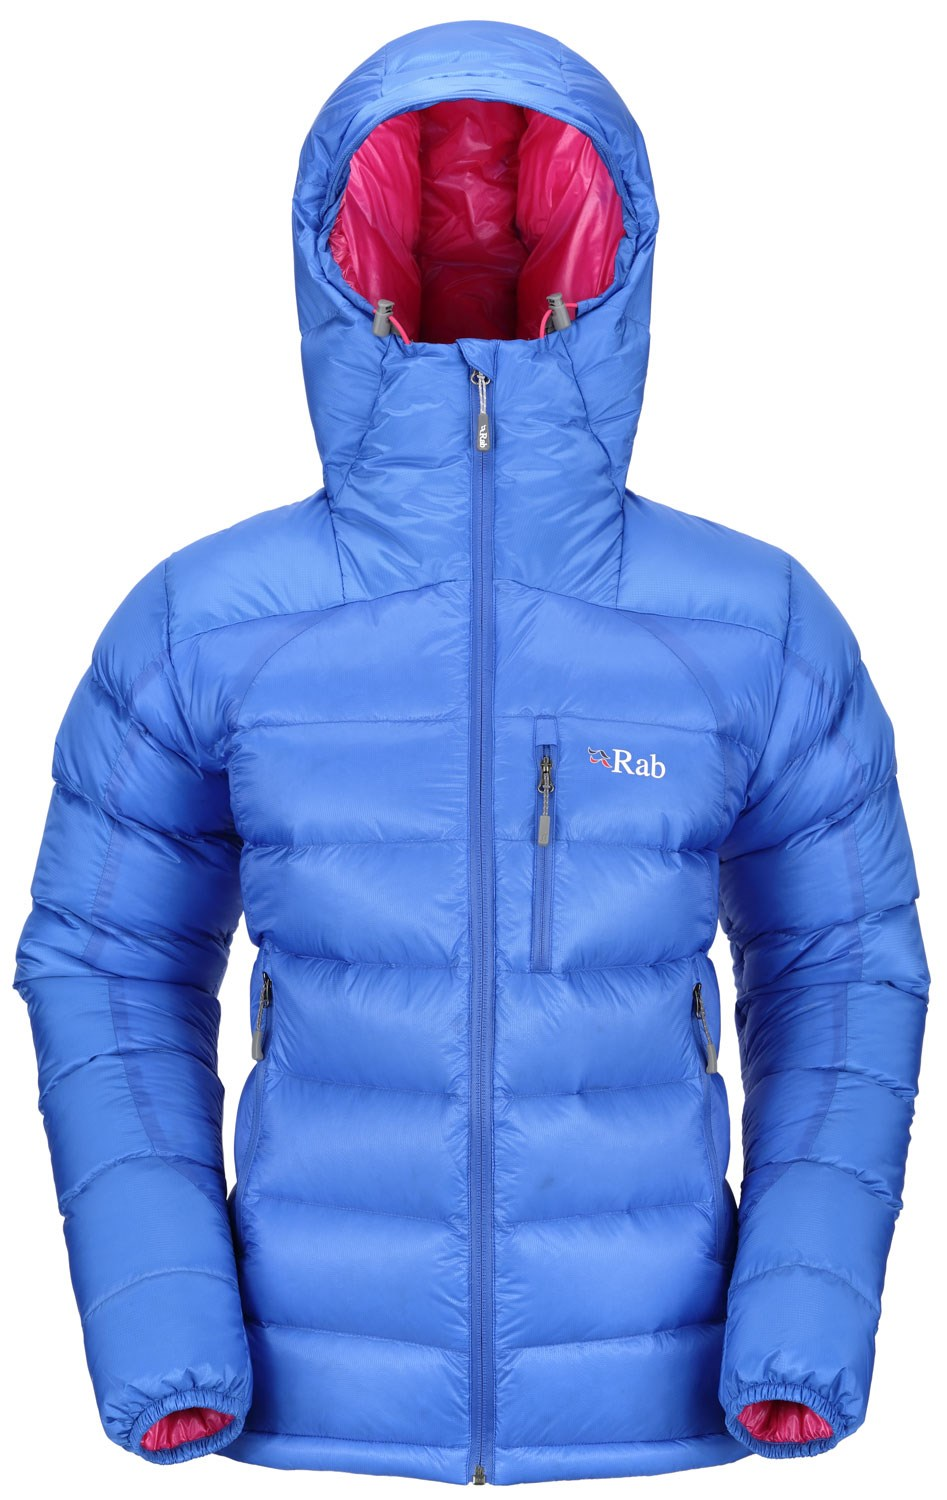 Rab Infinity Endurance Women's Jacket | GO Outdoors